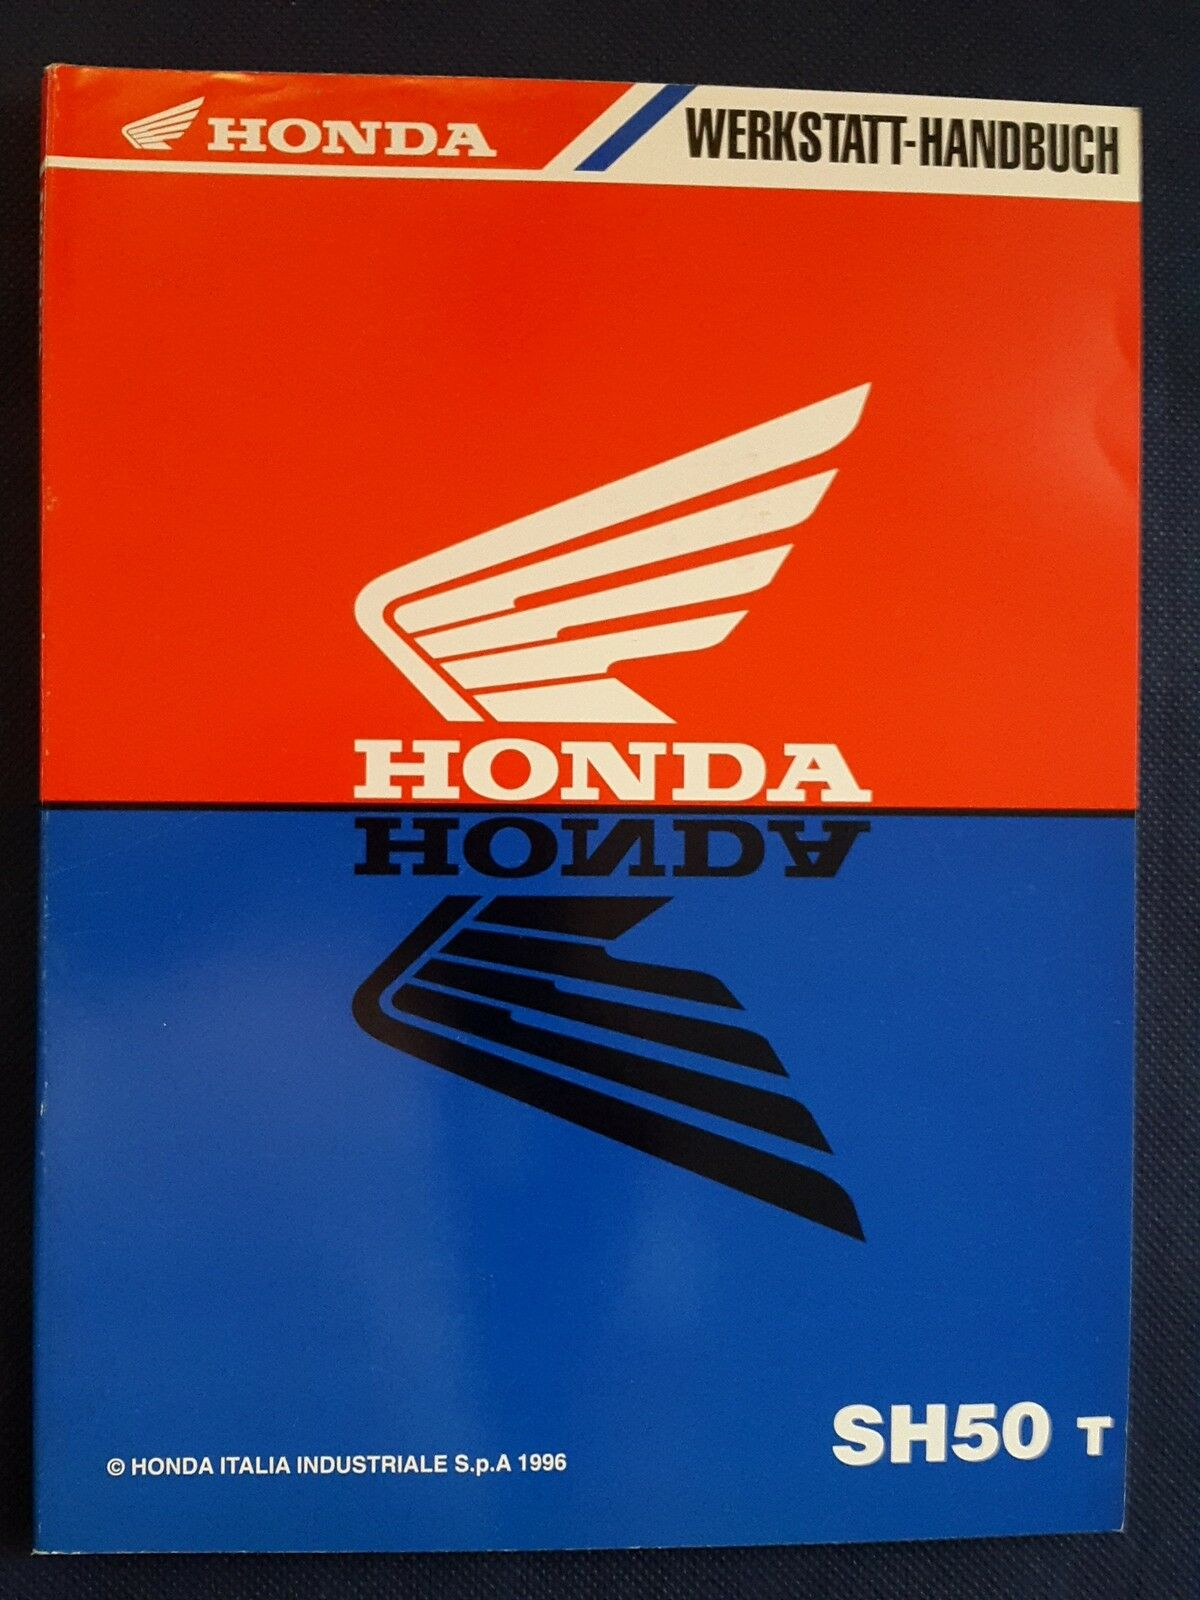 Workshop Handbook Repair Manual Honda Sh 50 T 1 of 1Only 1 available ...